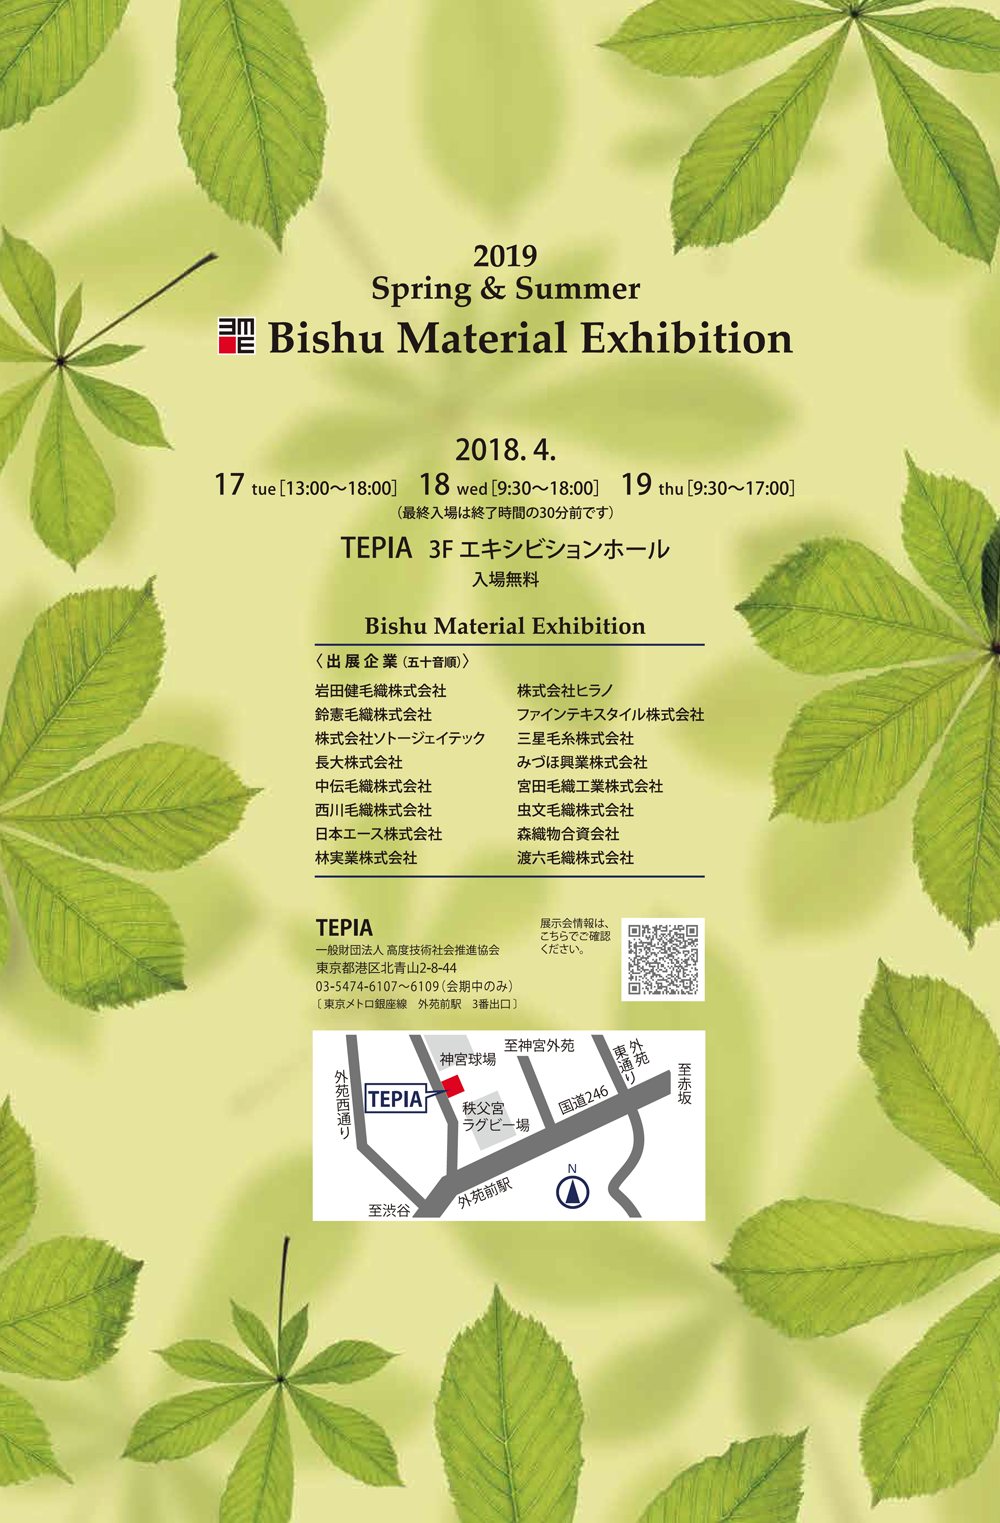 2019 Spring&Summer Bishu Material Exhibition開催のご案内